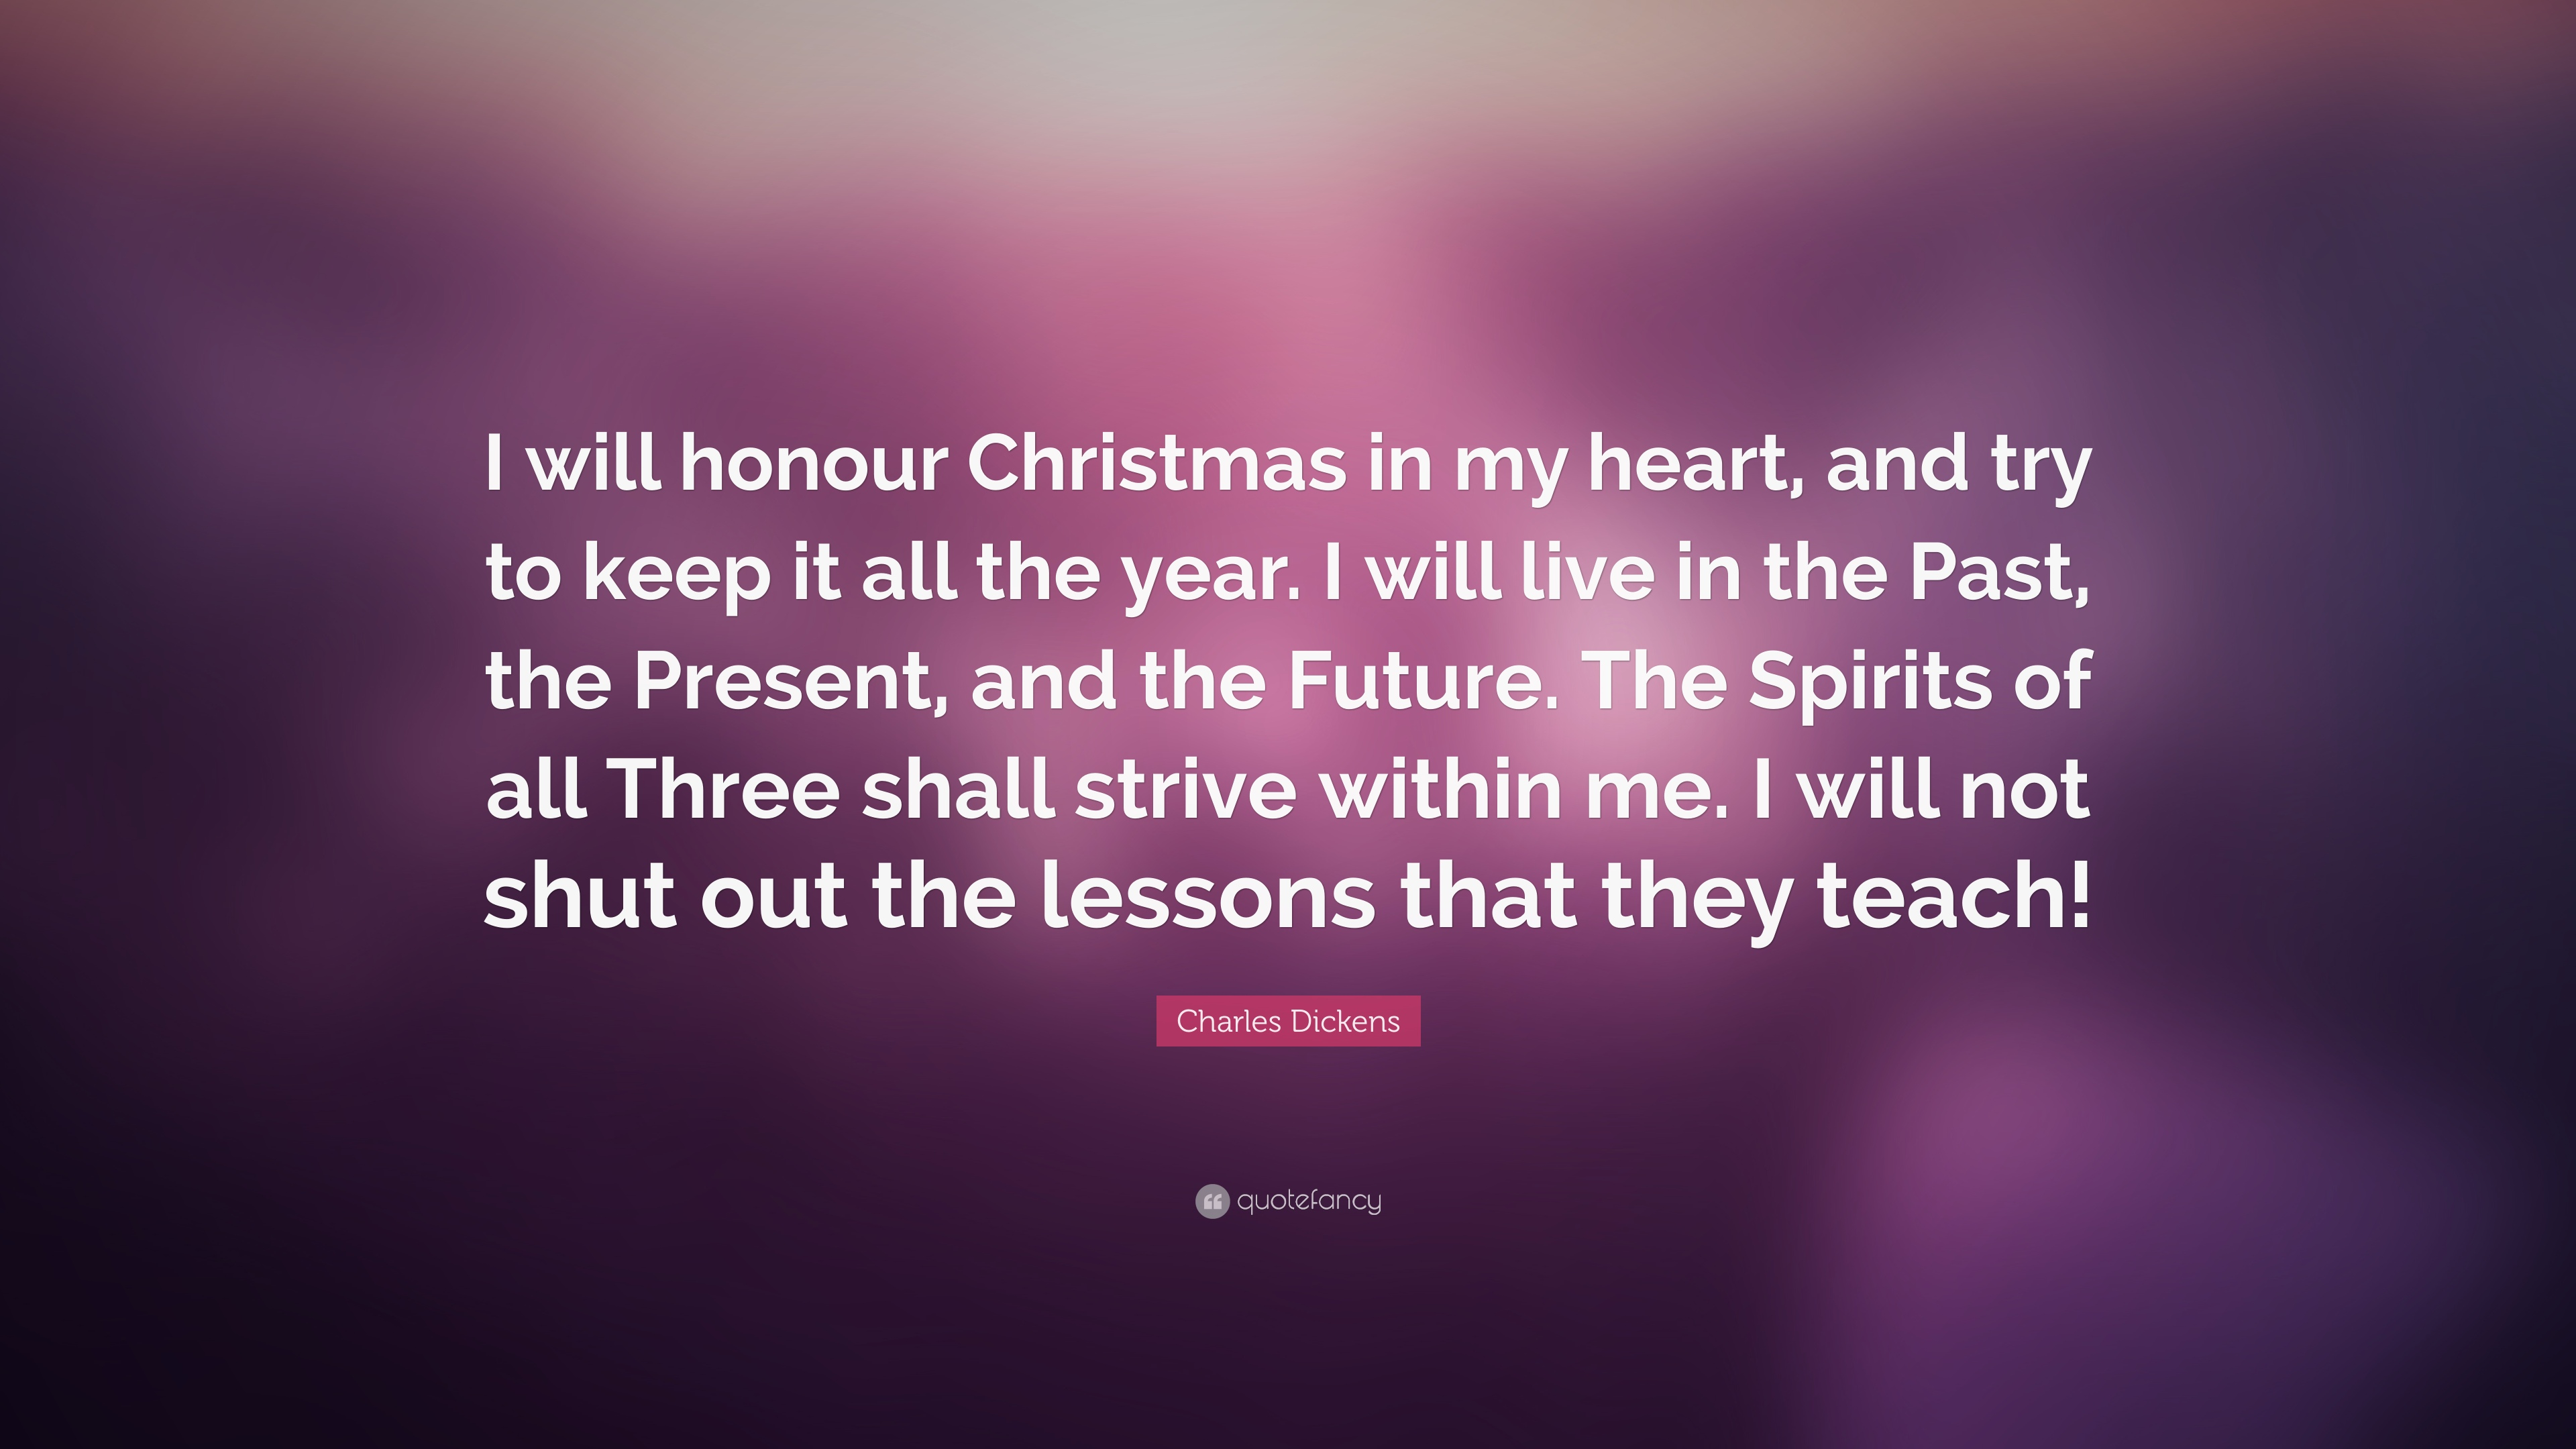 charles dickens quote i will honour christmas in my heart and try to - Christmas In My Heart